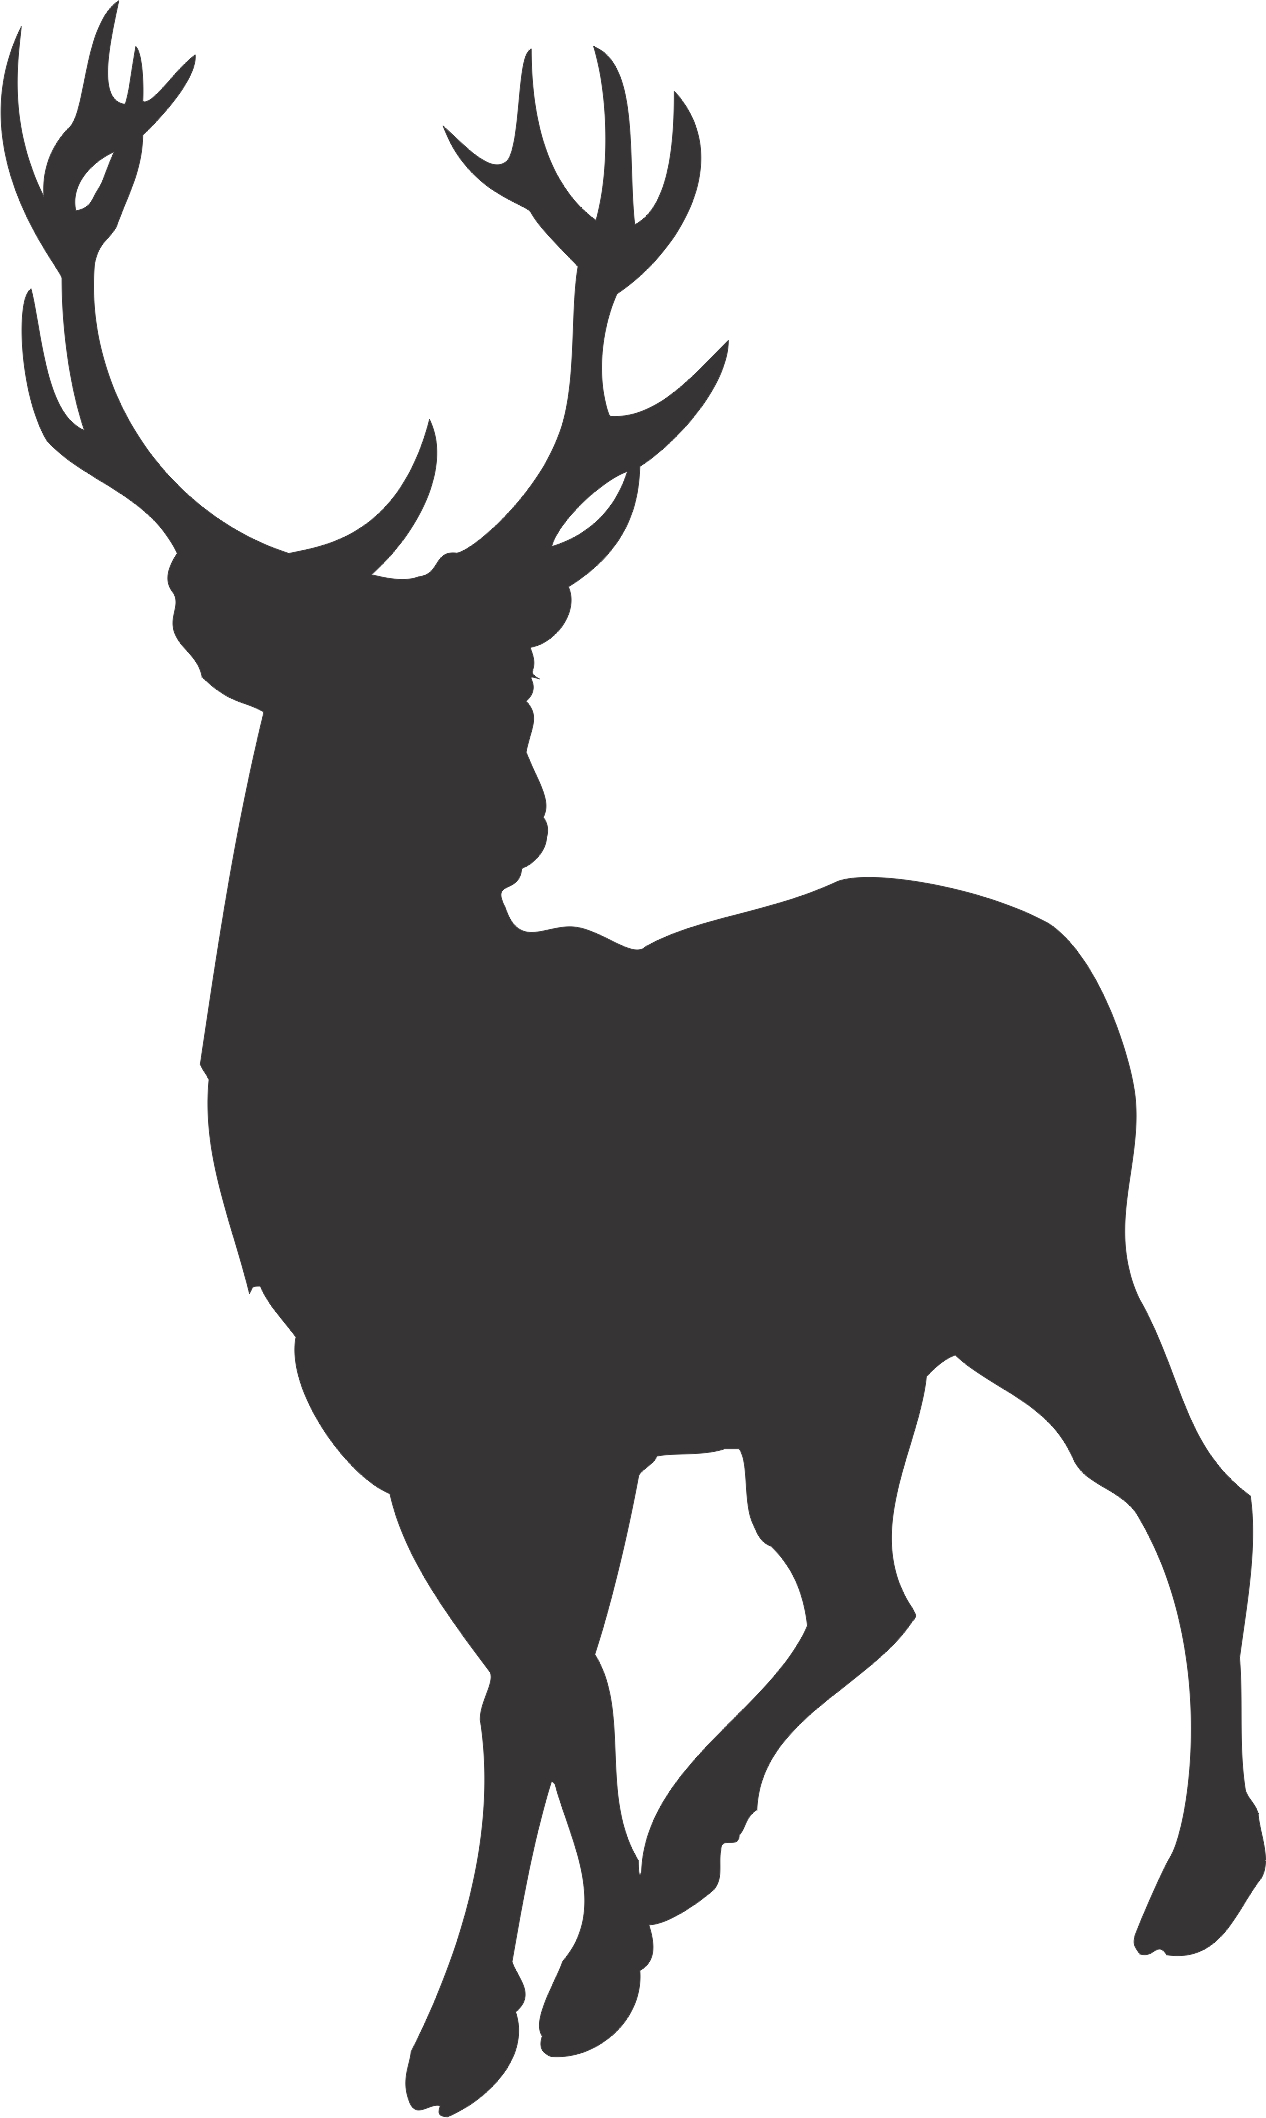 Stag silhouette clipart.